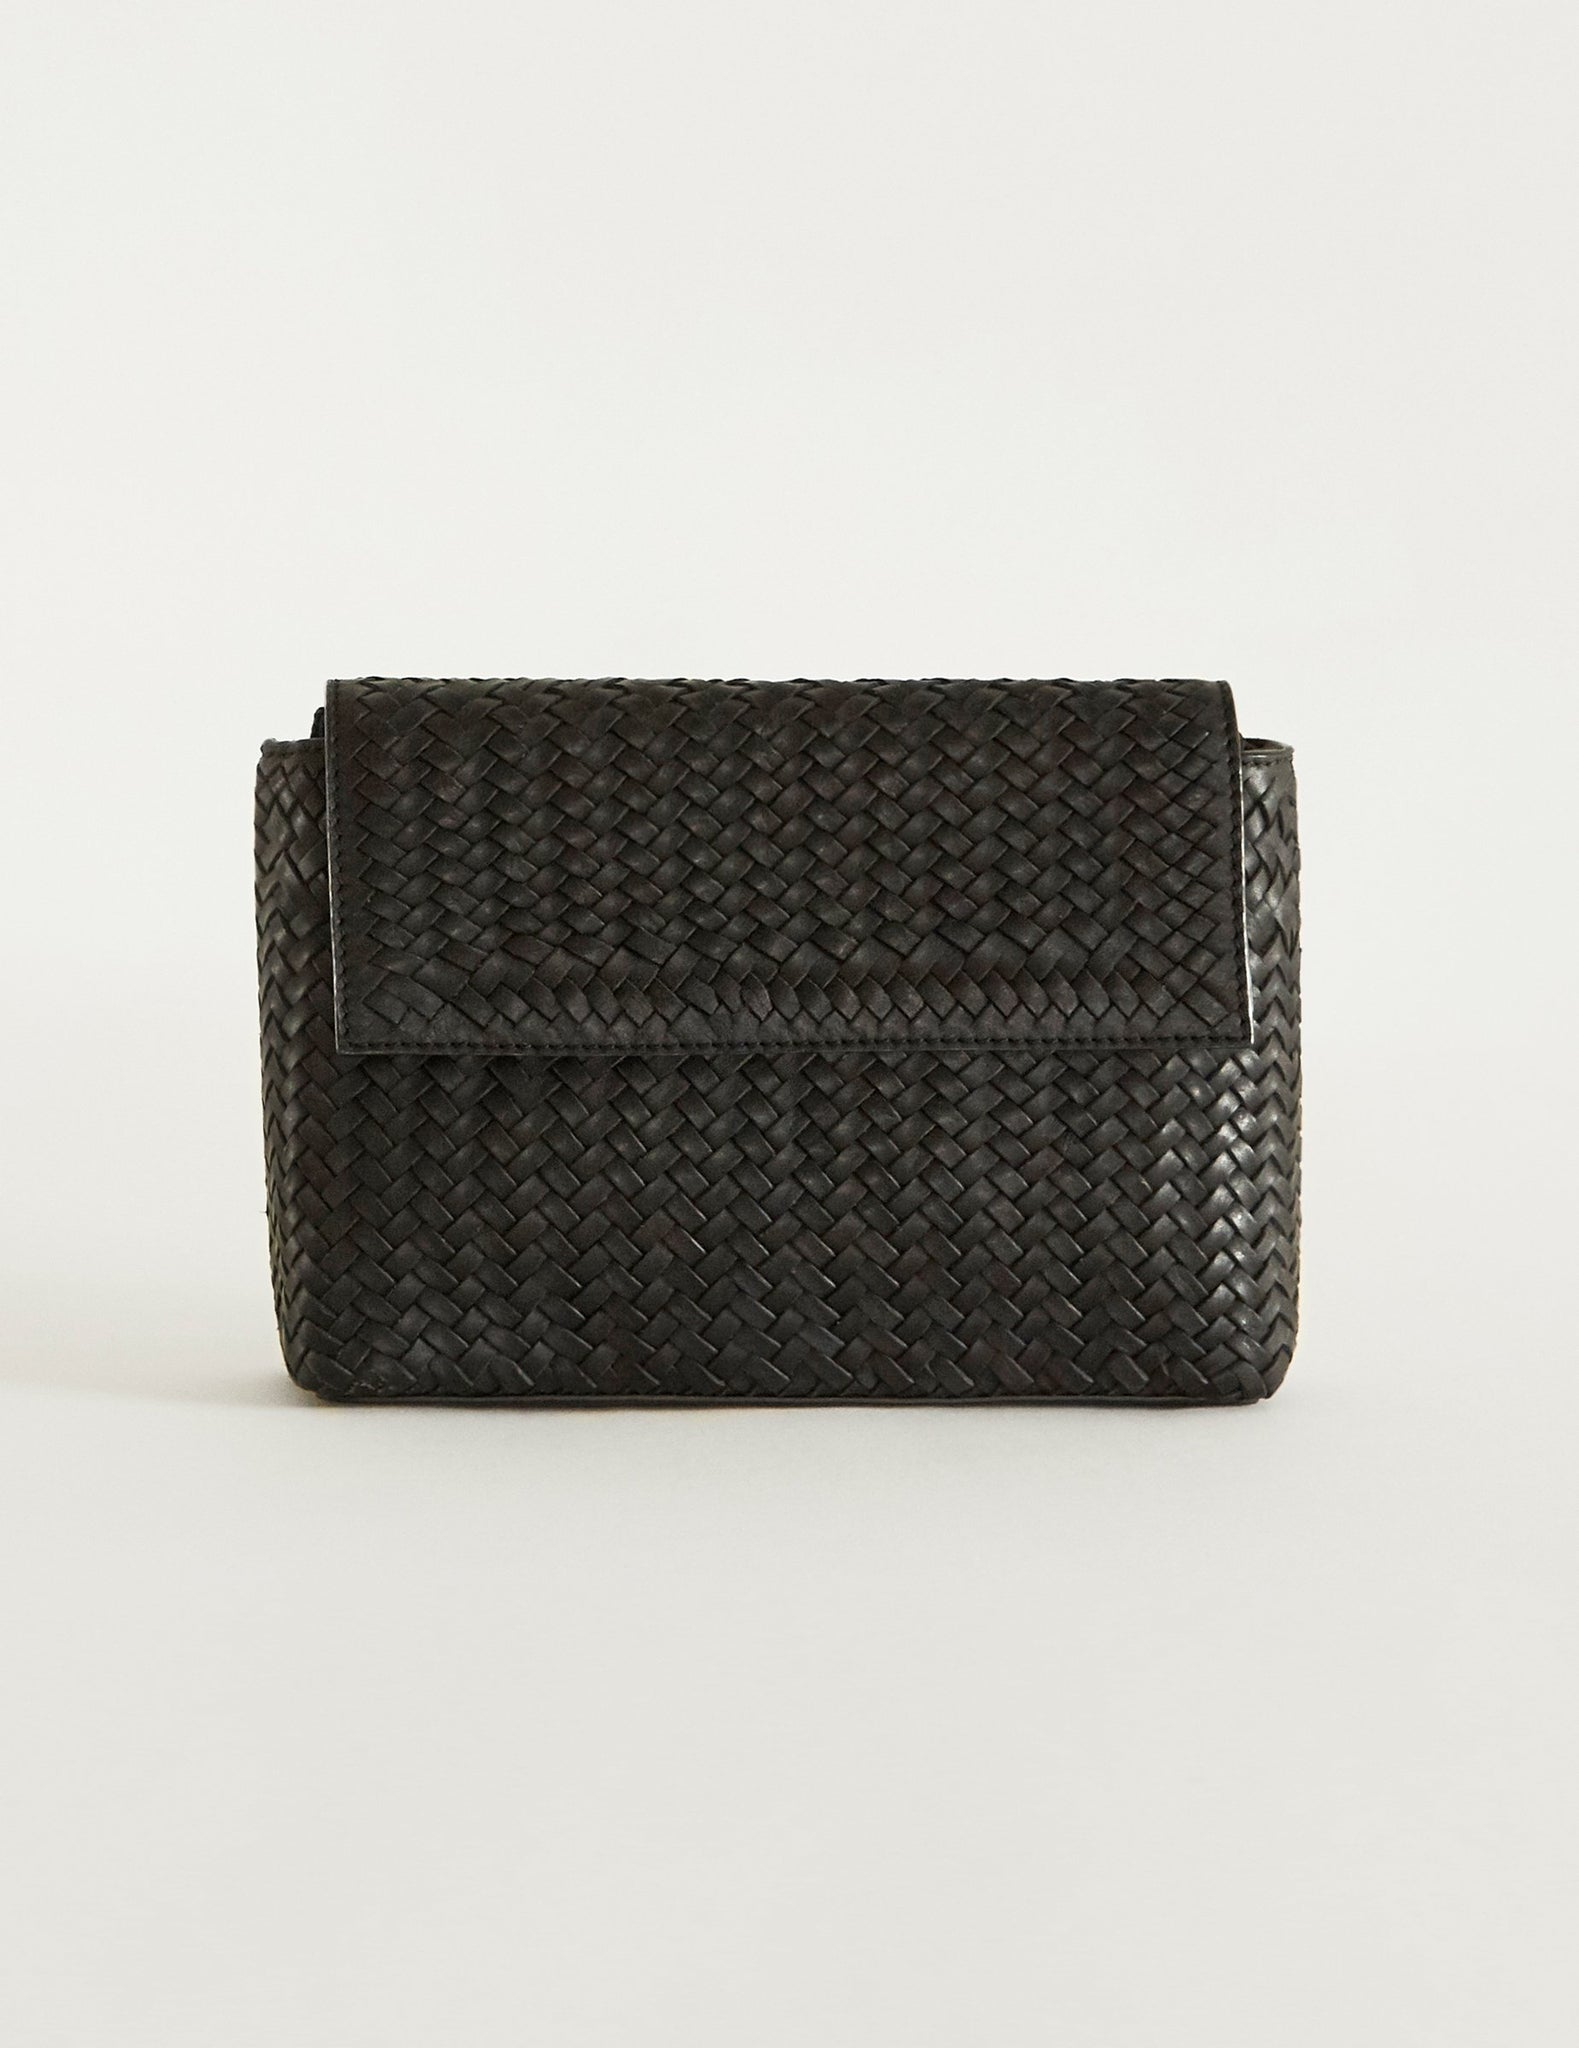 Woven Leather Tokri Cross Body